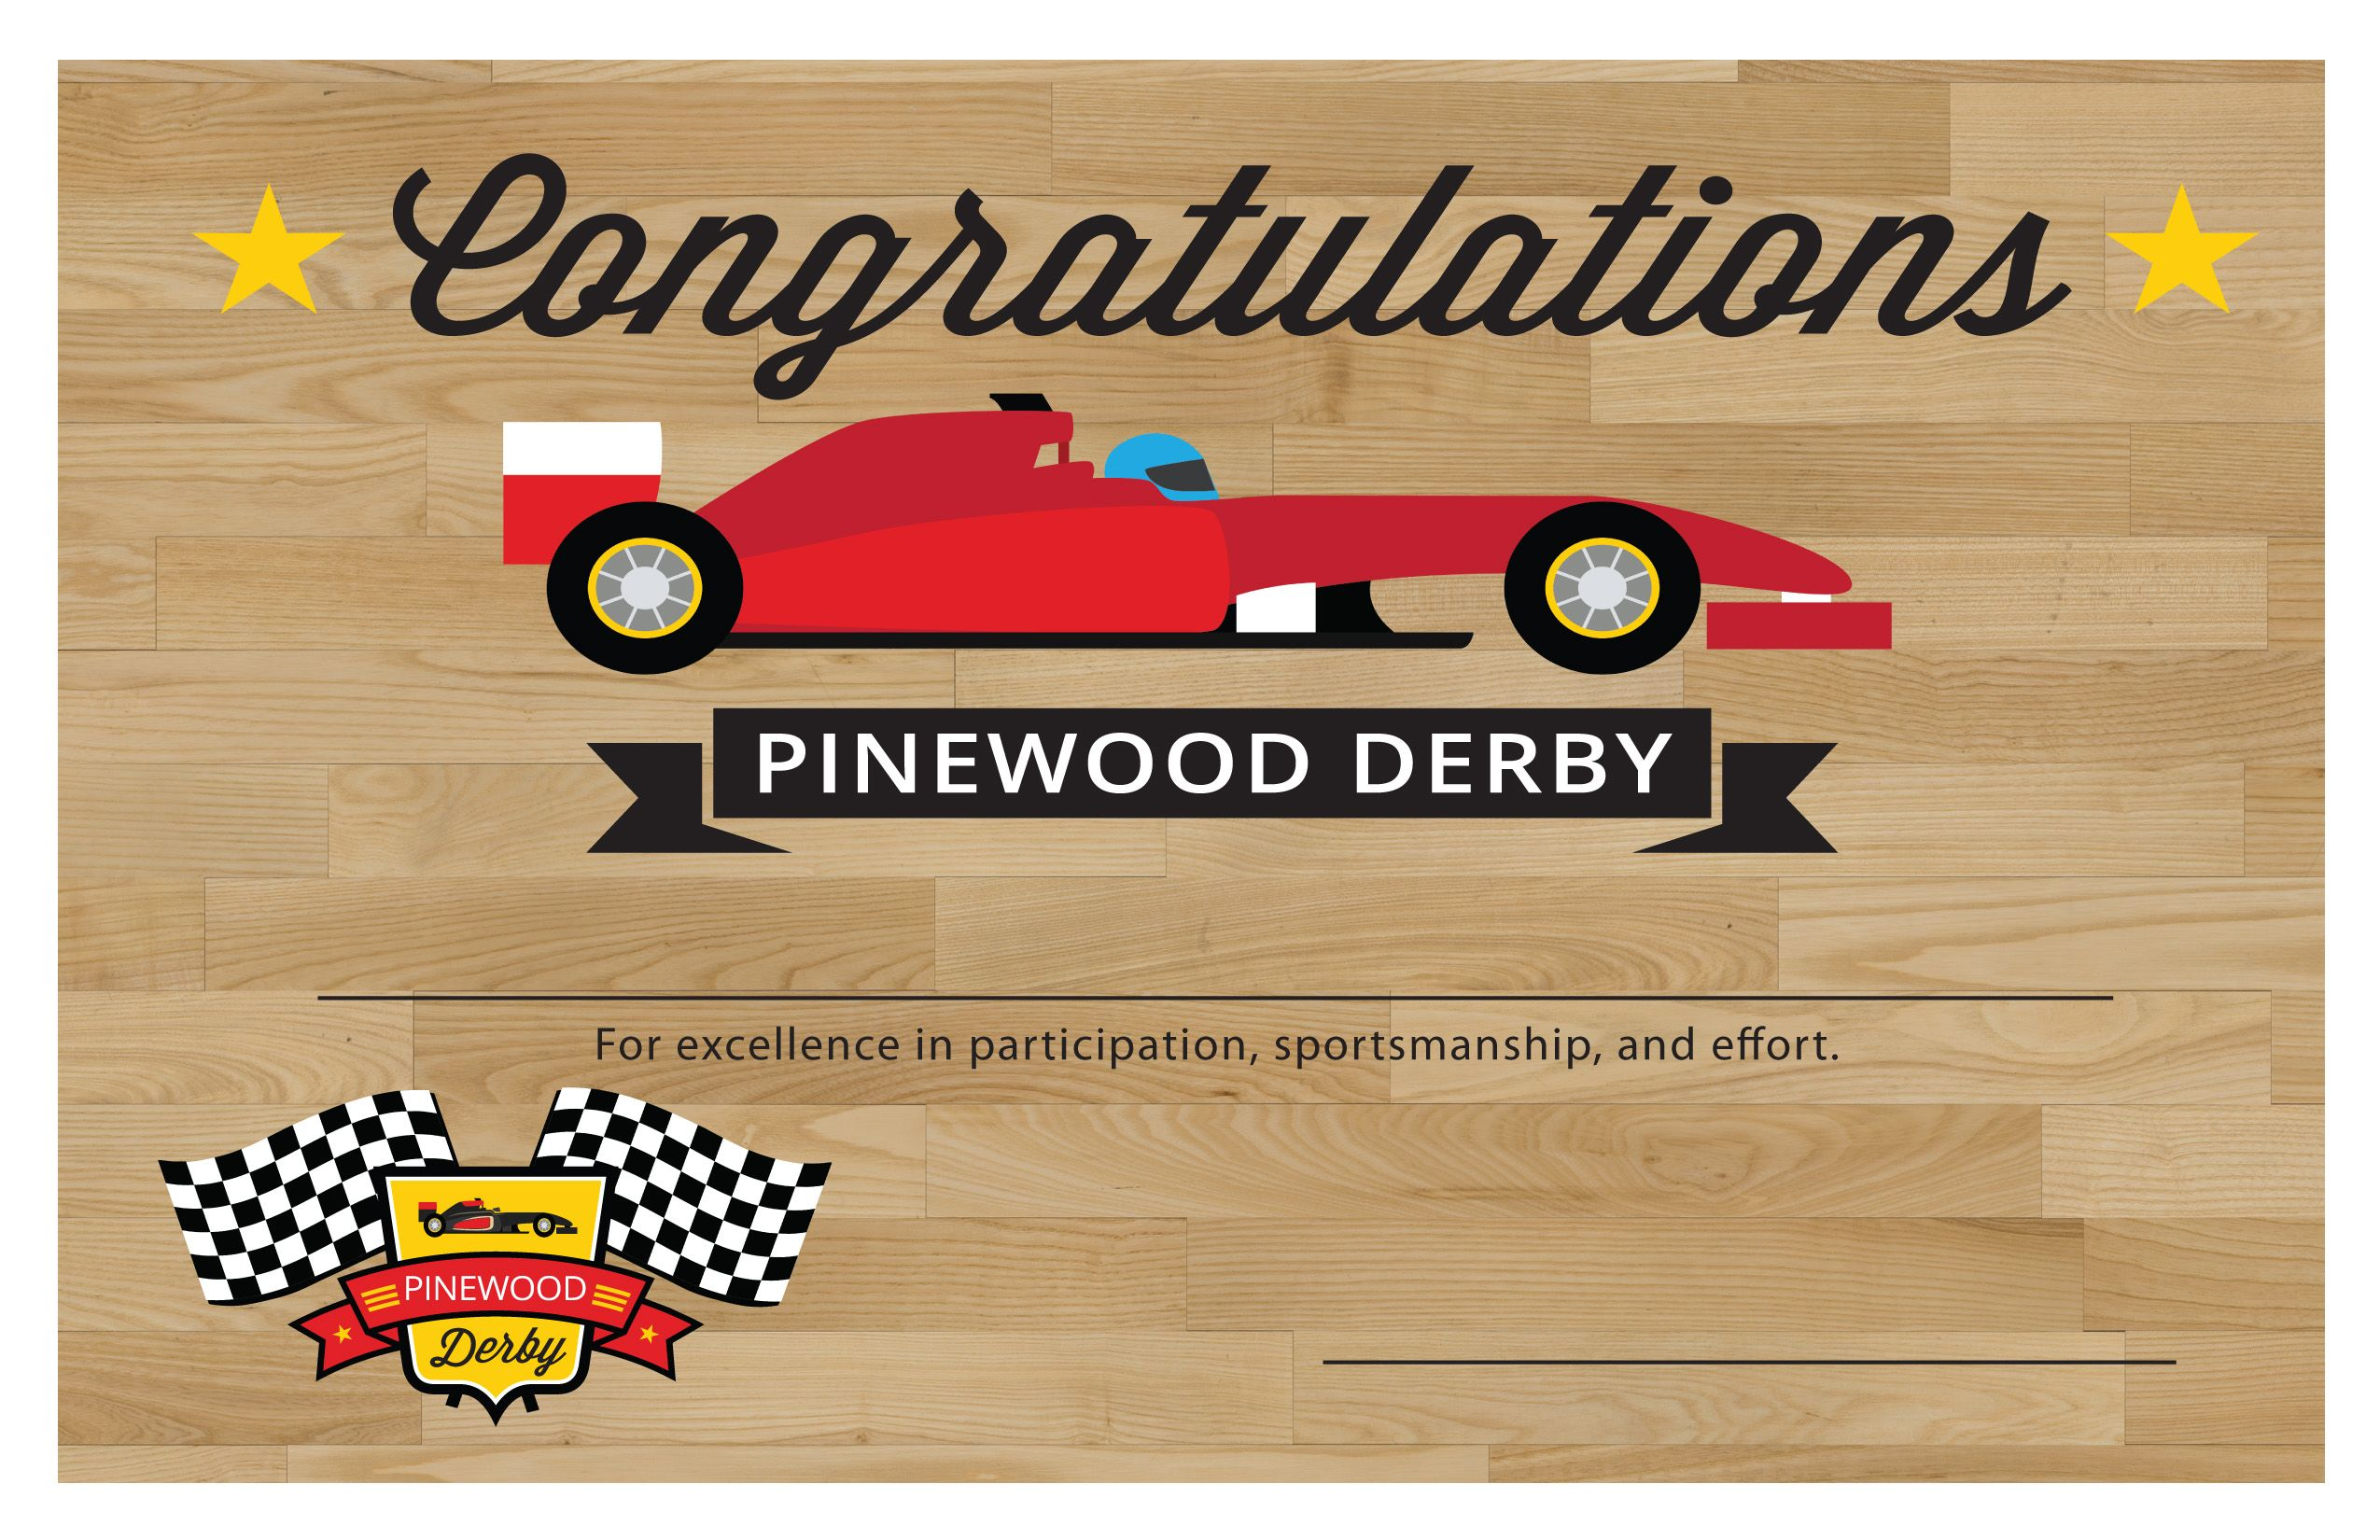 graphic regarding Pinewood Derby Awards Printable identify Pin upon Pinewood Derby